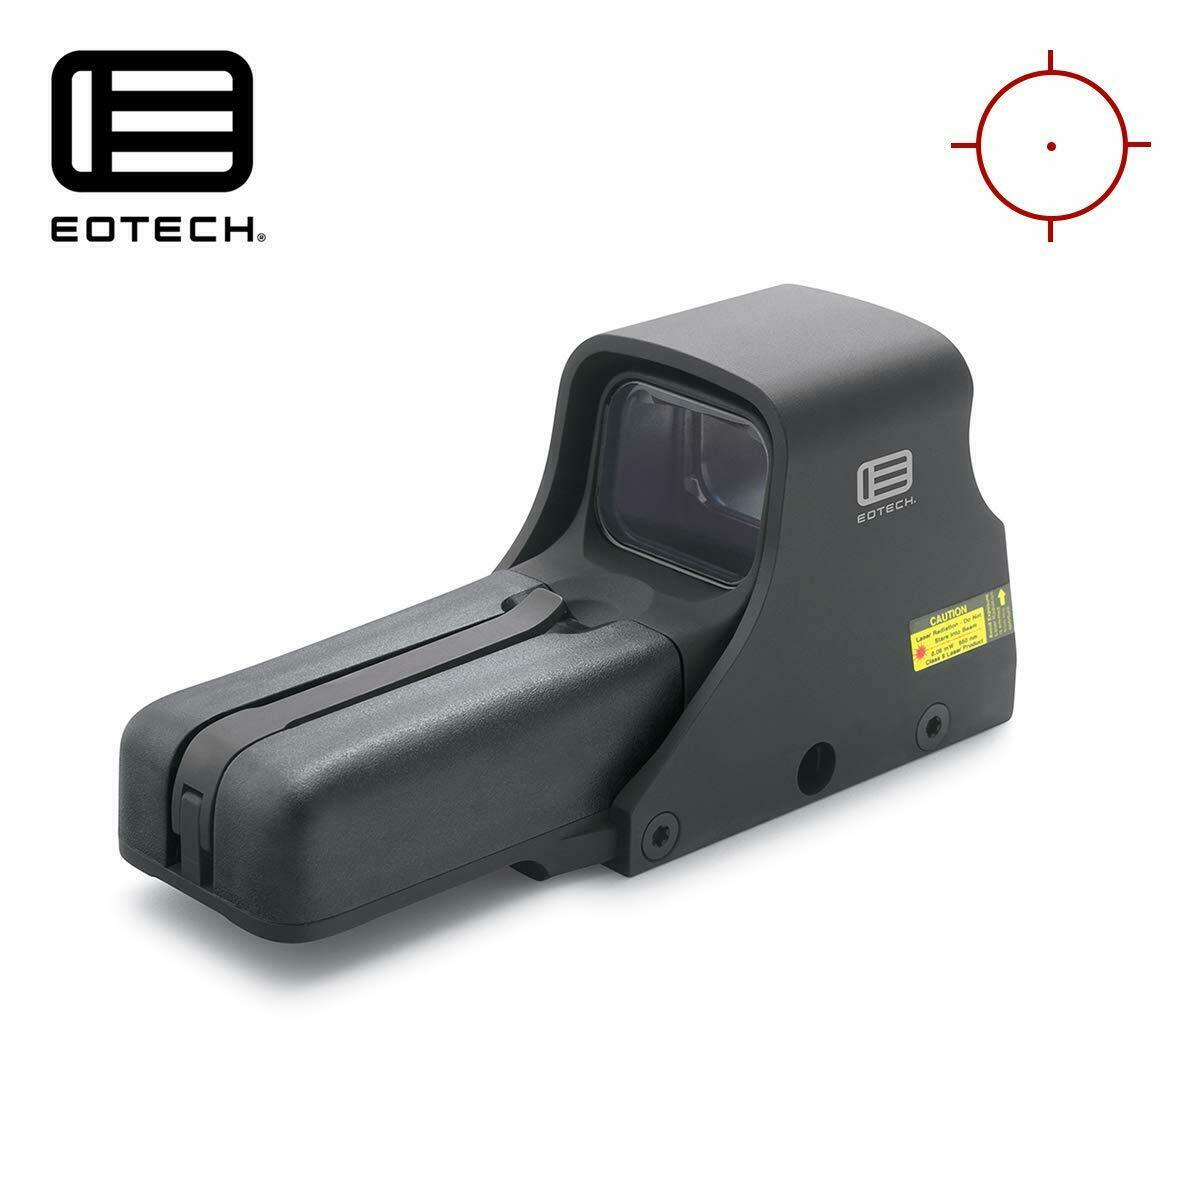 EOTech 512.A65 Holographic Weapon Sight Scope 68 MOA Circle 1 MOA Red Dot